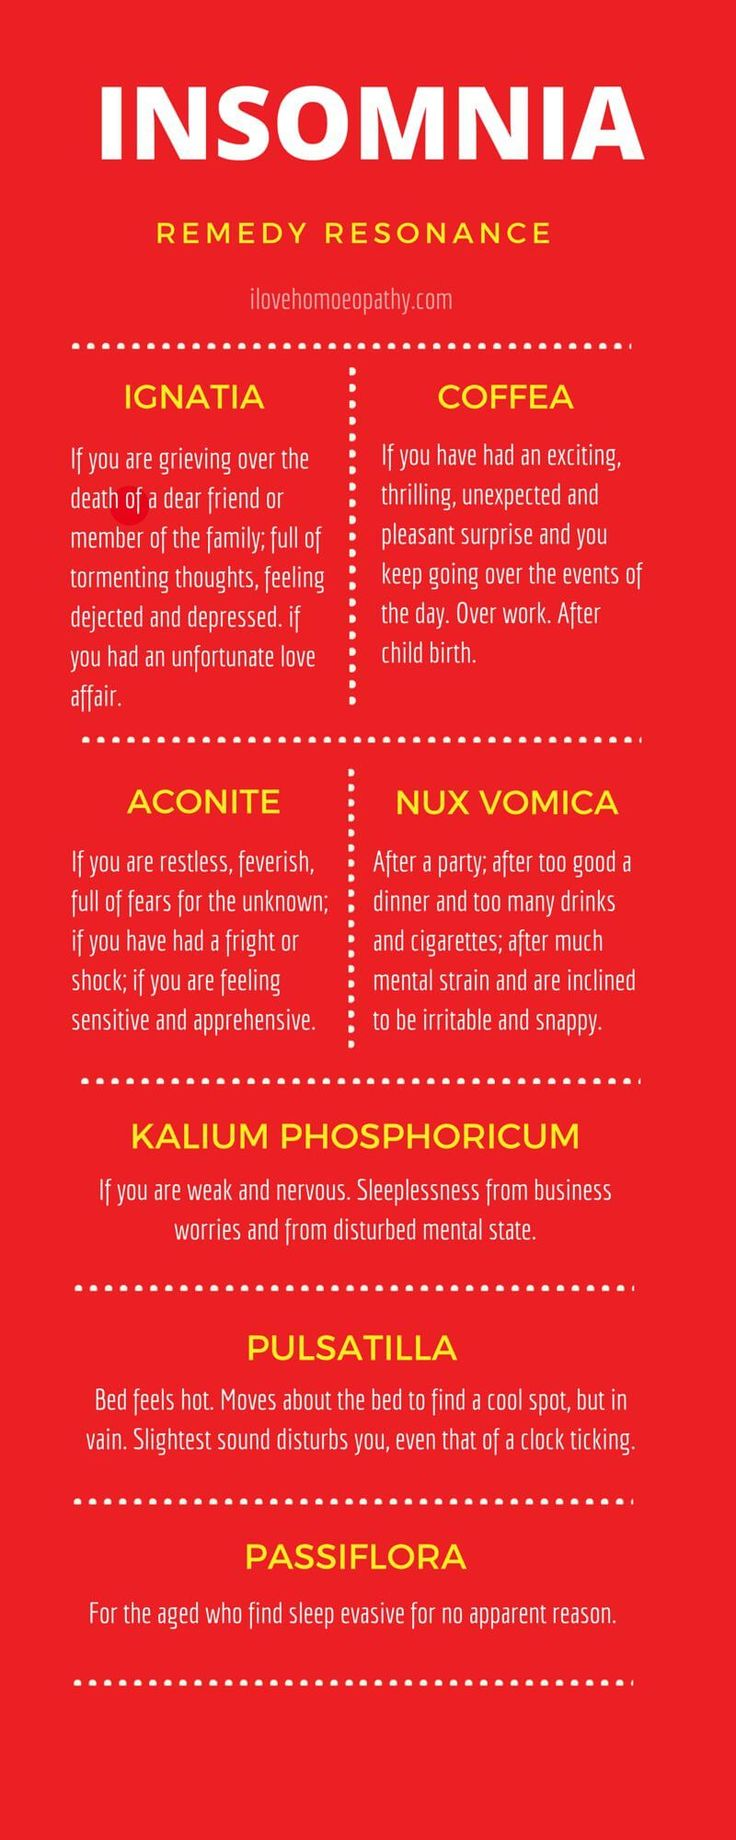 Sleeplessness can be contributed to many factors, but the continued difficulty becomes a serious illness. This need very careful diagnosis by a homeopath. There are more than 30 remedies that could work for sleeplessness but it your homeopath who can find the right remedy resonance for you. Here we discuss some of the remedies for …